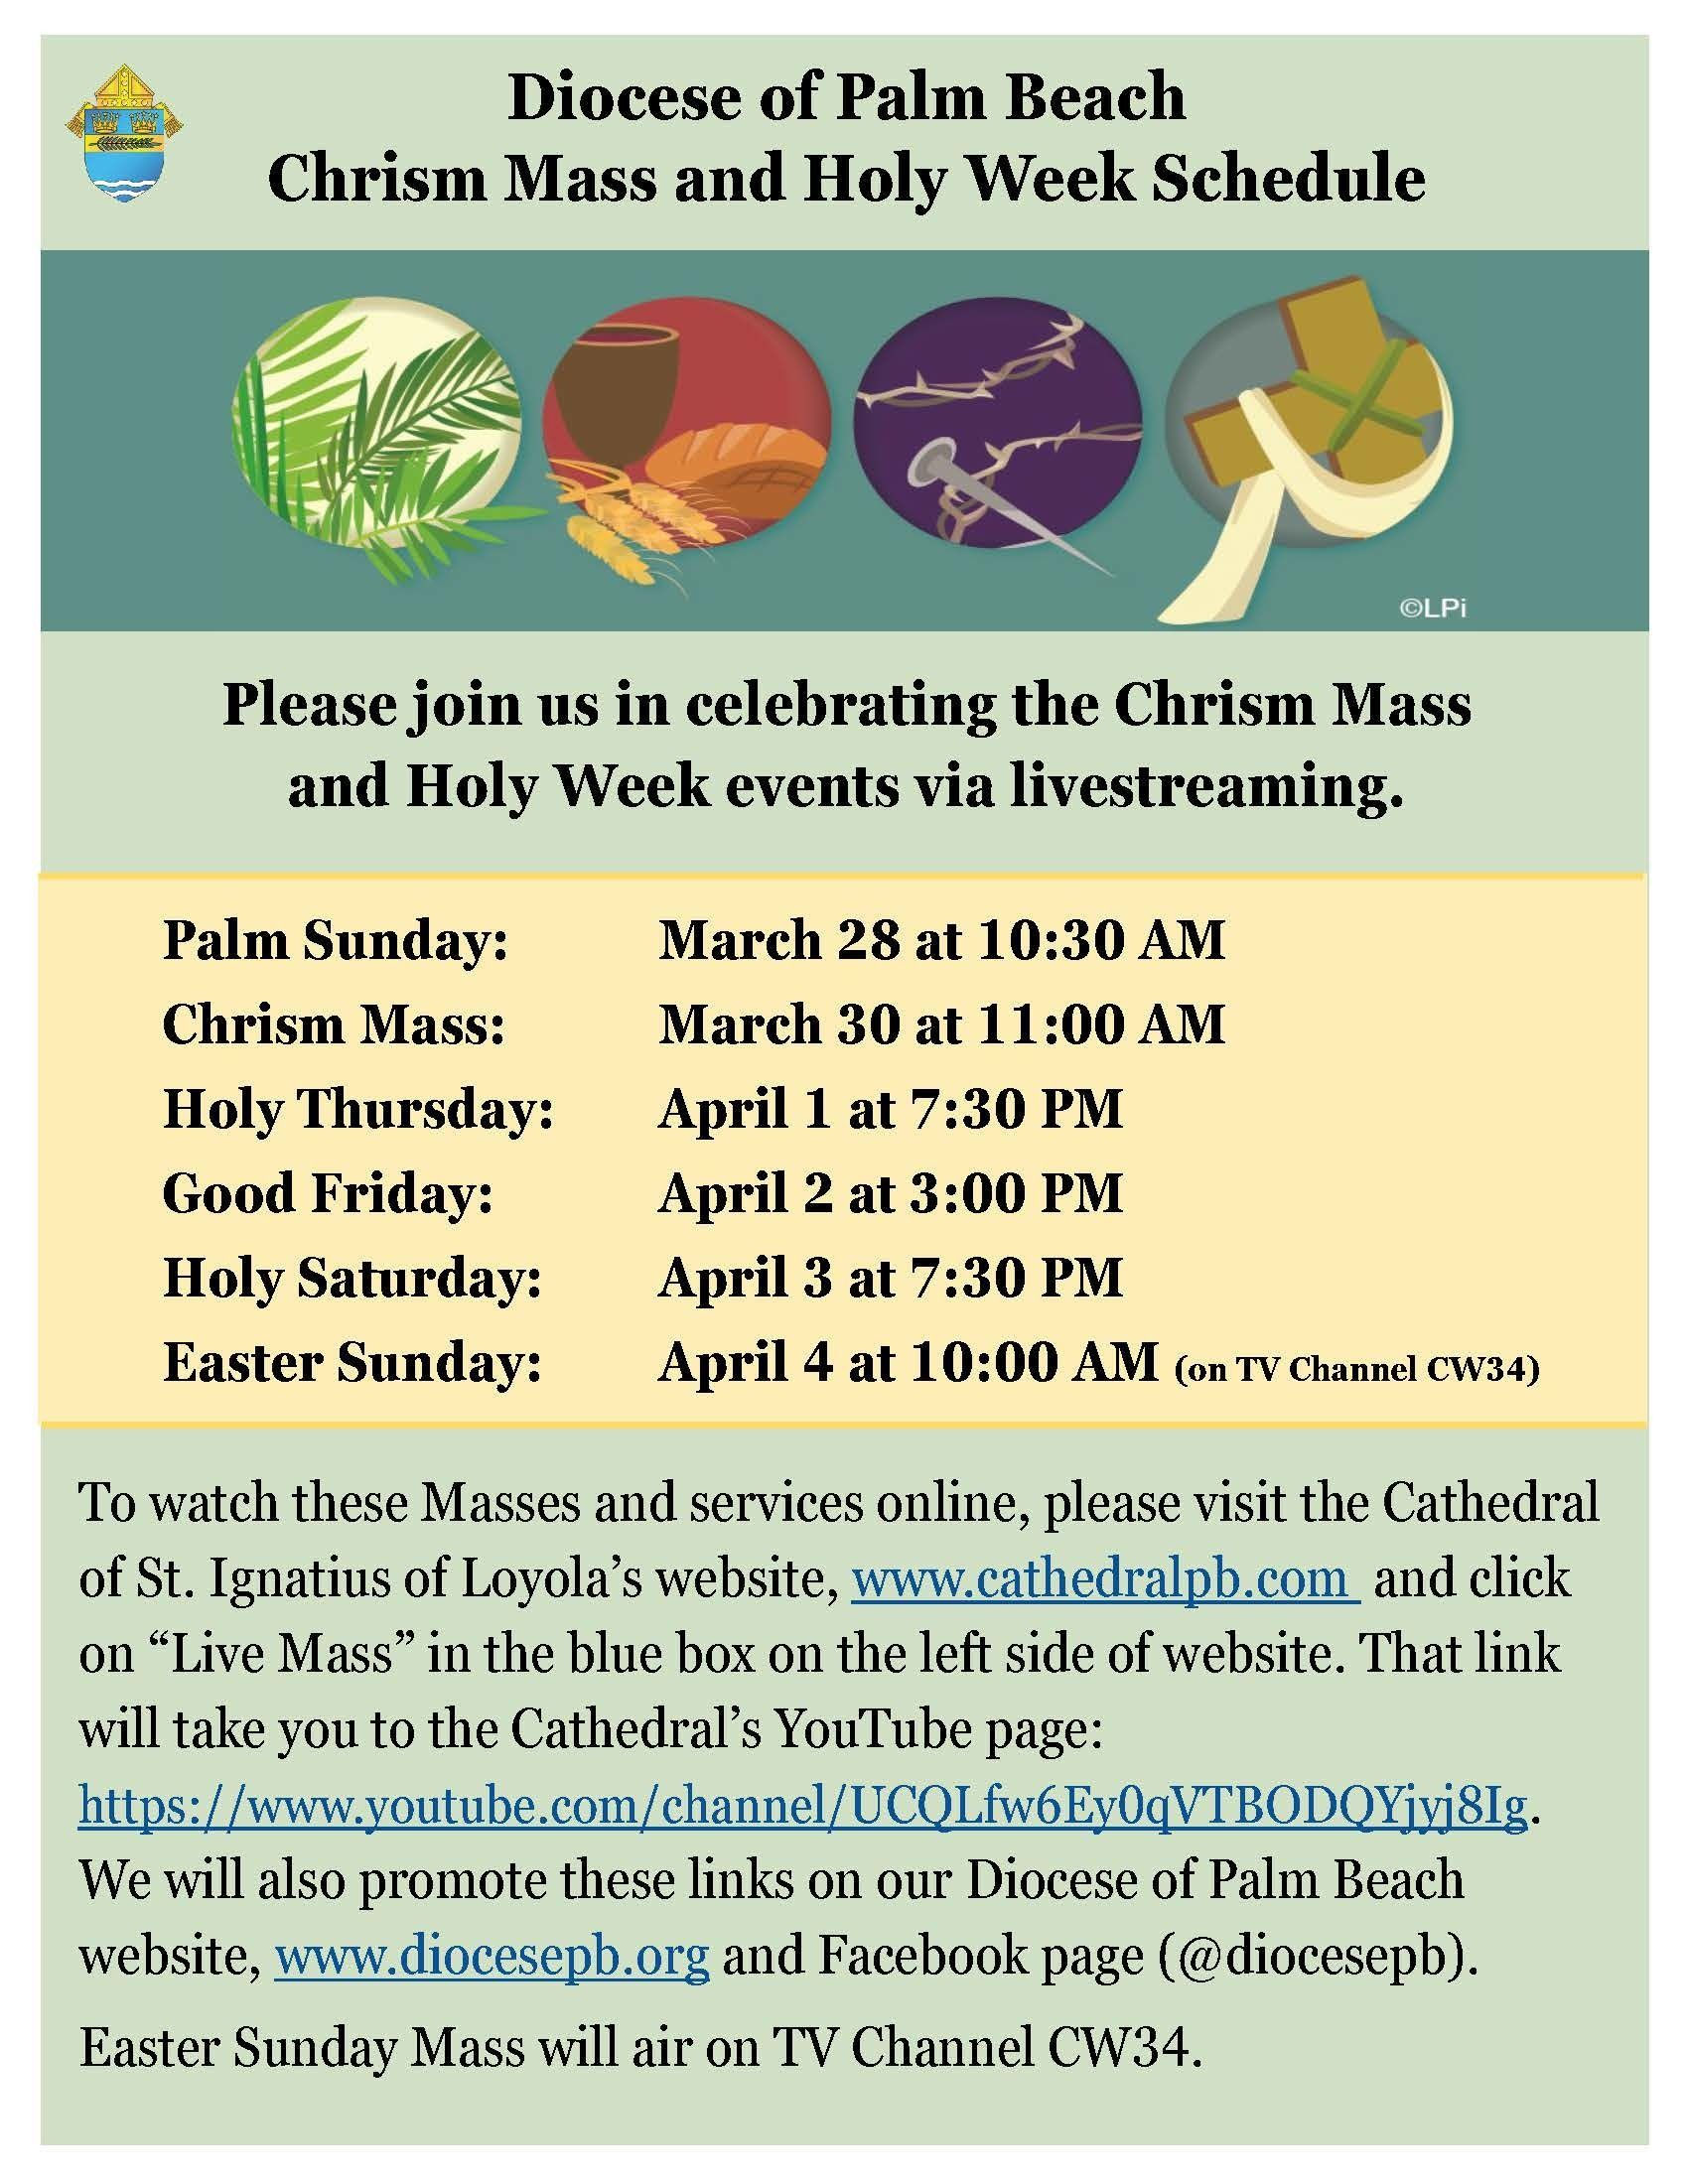 Holy Week live streamed and televised Masses and services